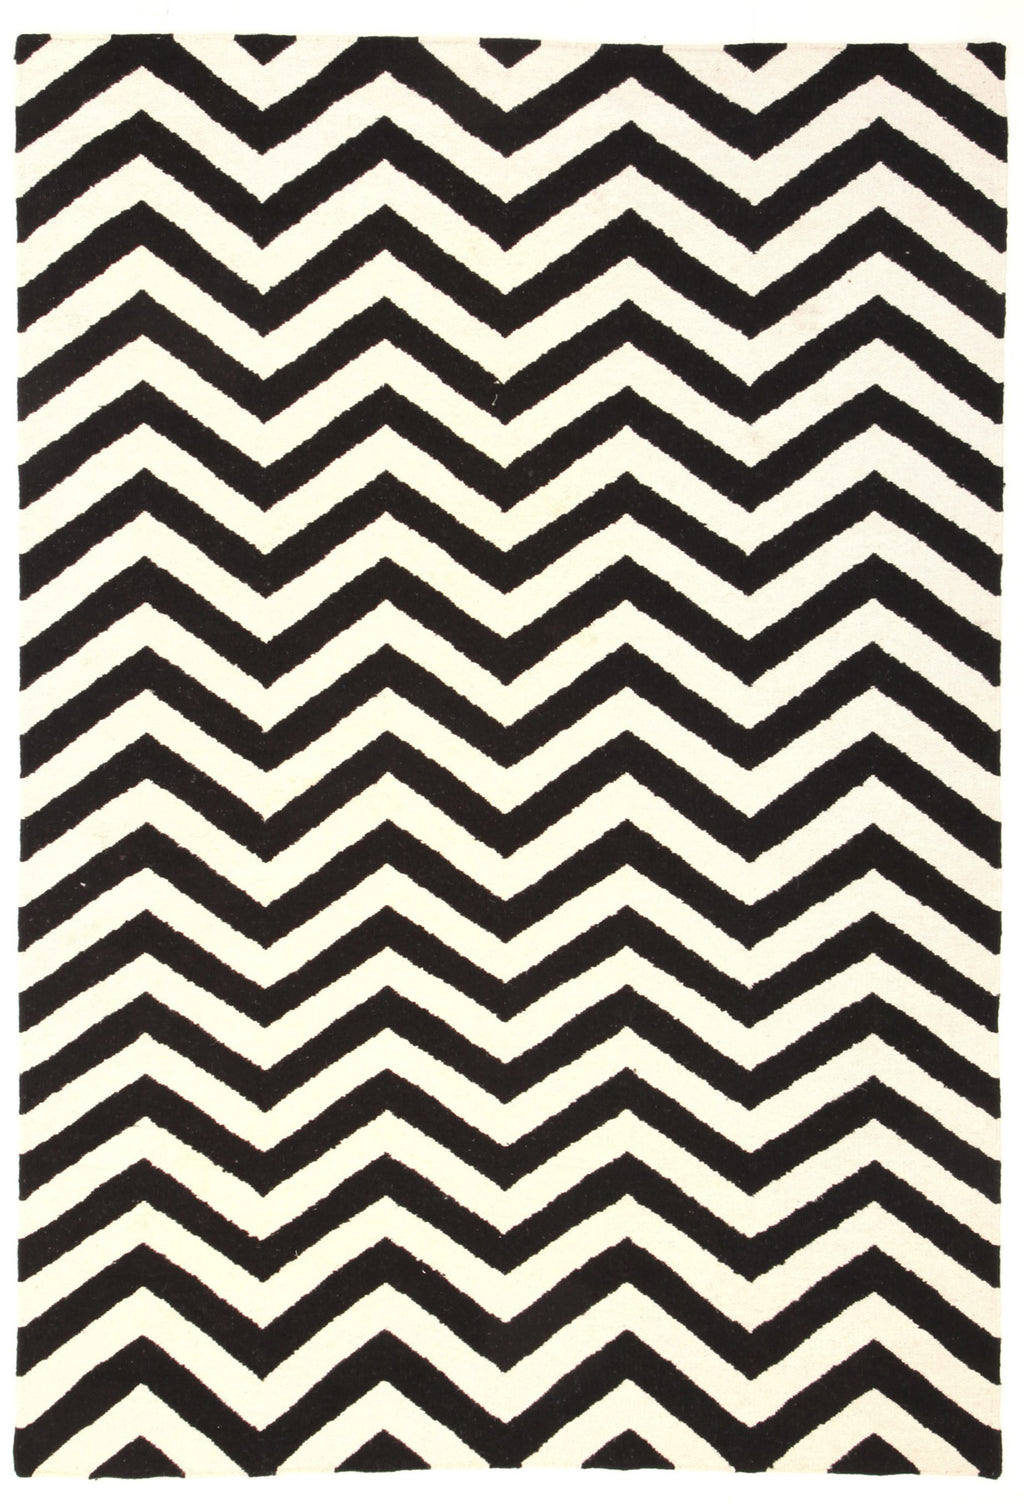 Rio Flat Weave Chevron Design Rug Black White